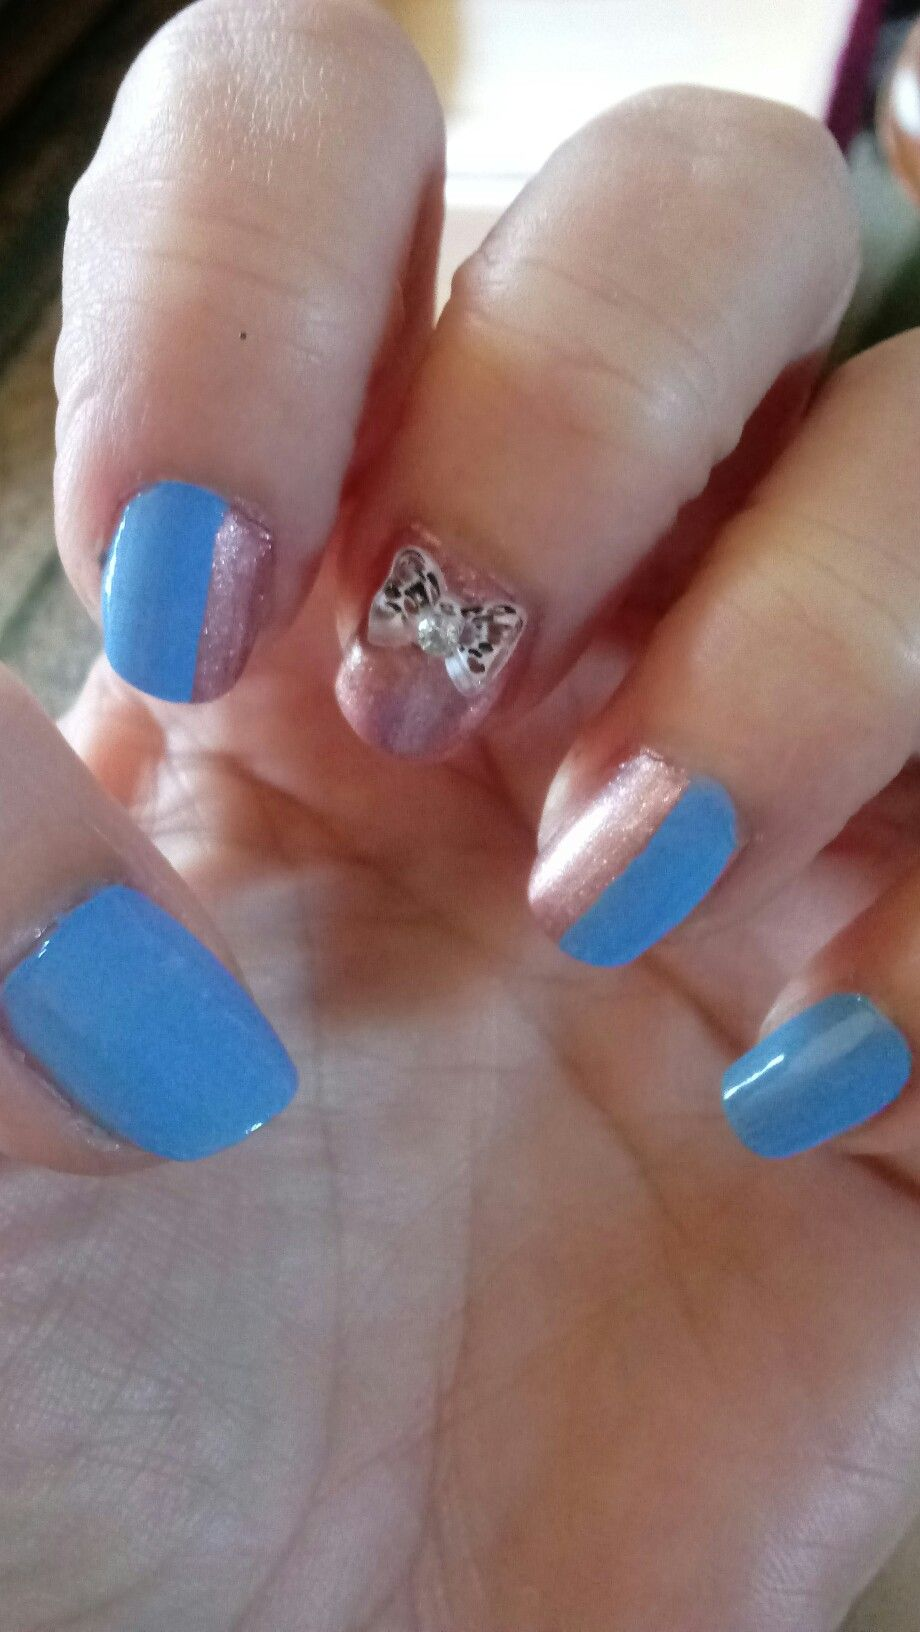 Pin By Ange Sliemers On Short Nail Designs I Paint Myself